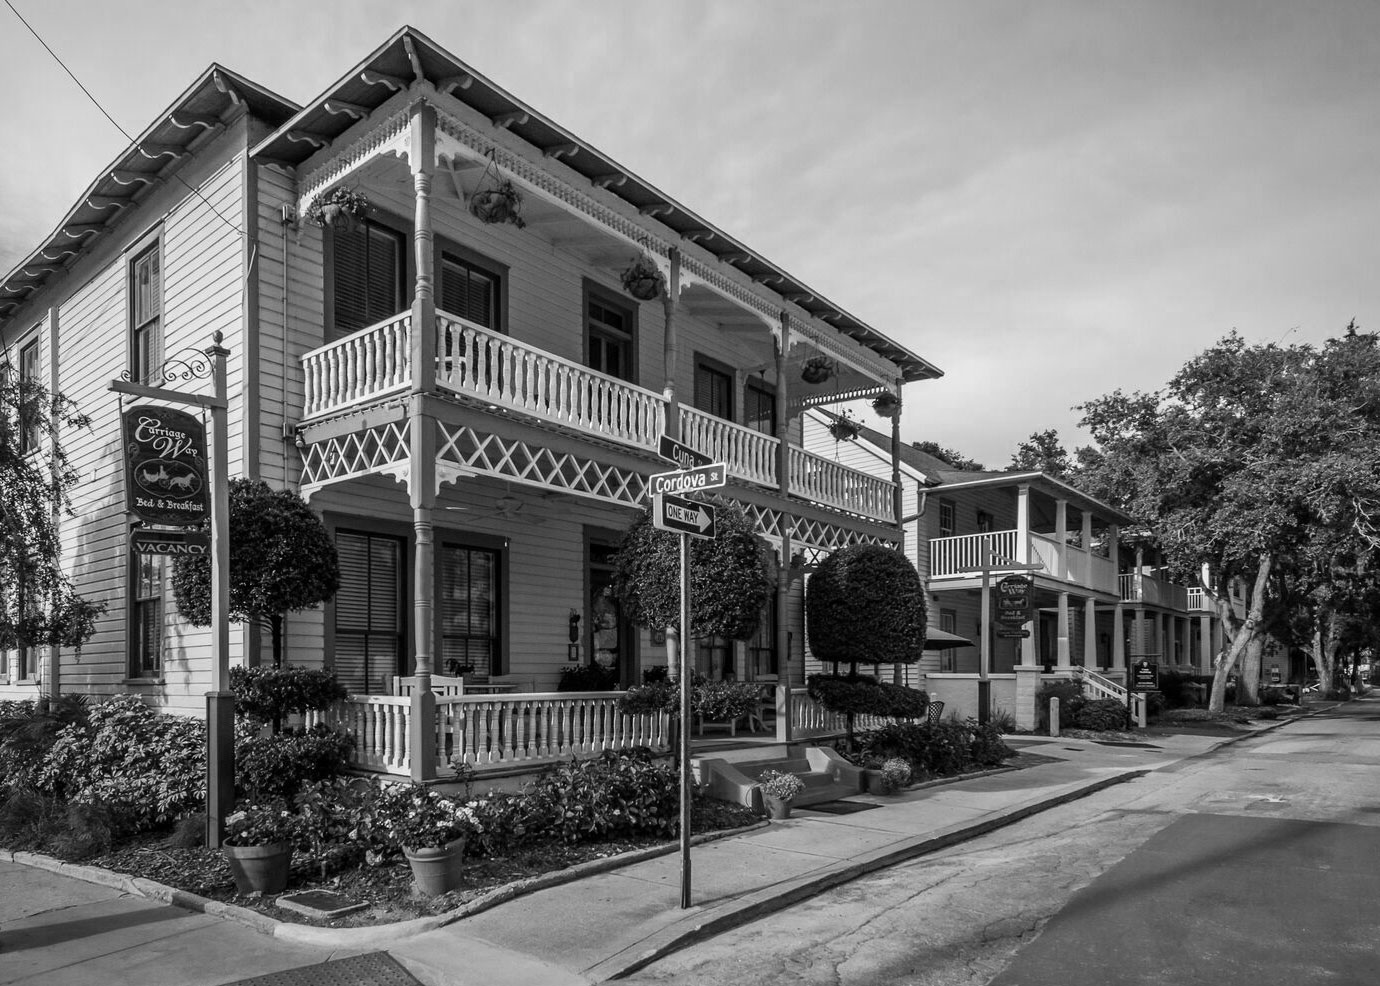 History of the Carriage Way Bed & Breakfast